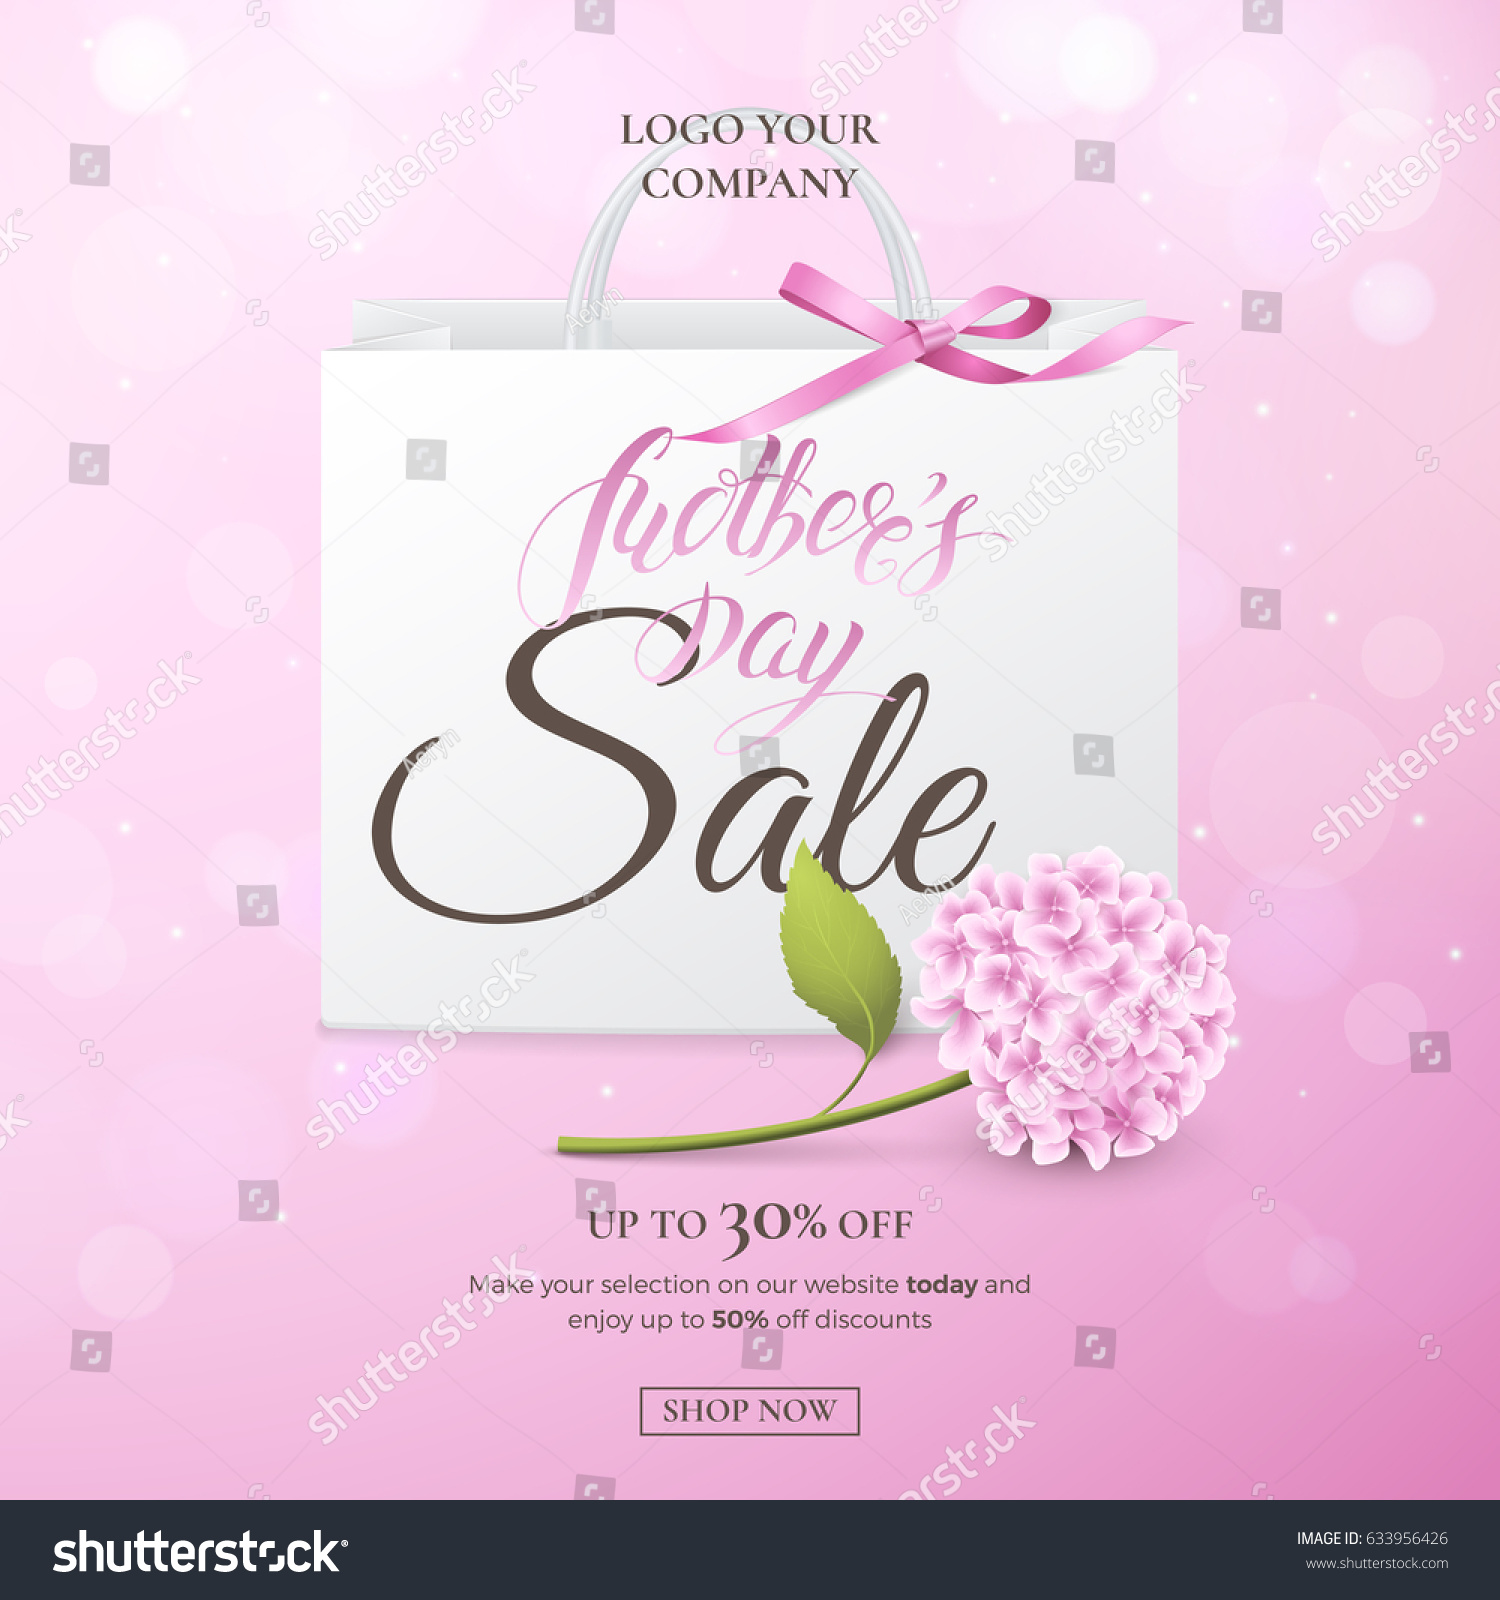 Mothers Day Storewide Sale Template: Vector Sale Poster Discounts Offers Mothers Stock Vector